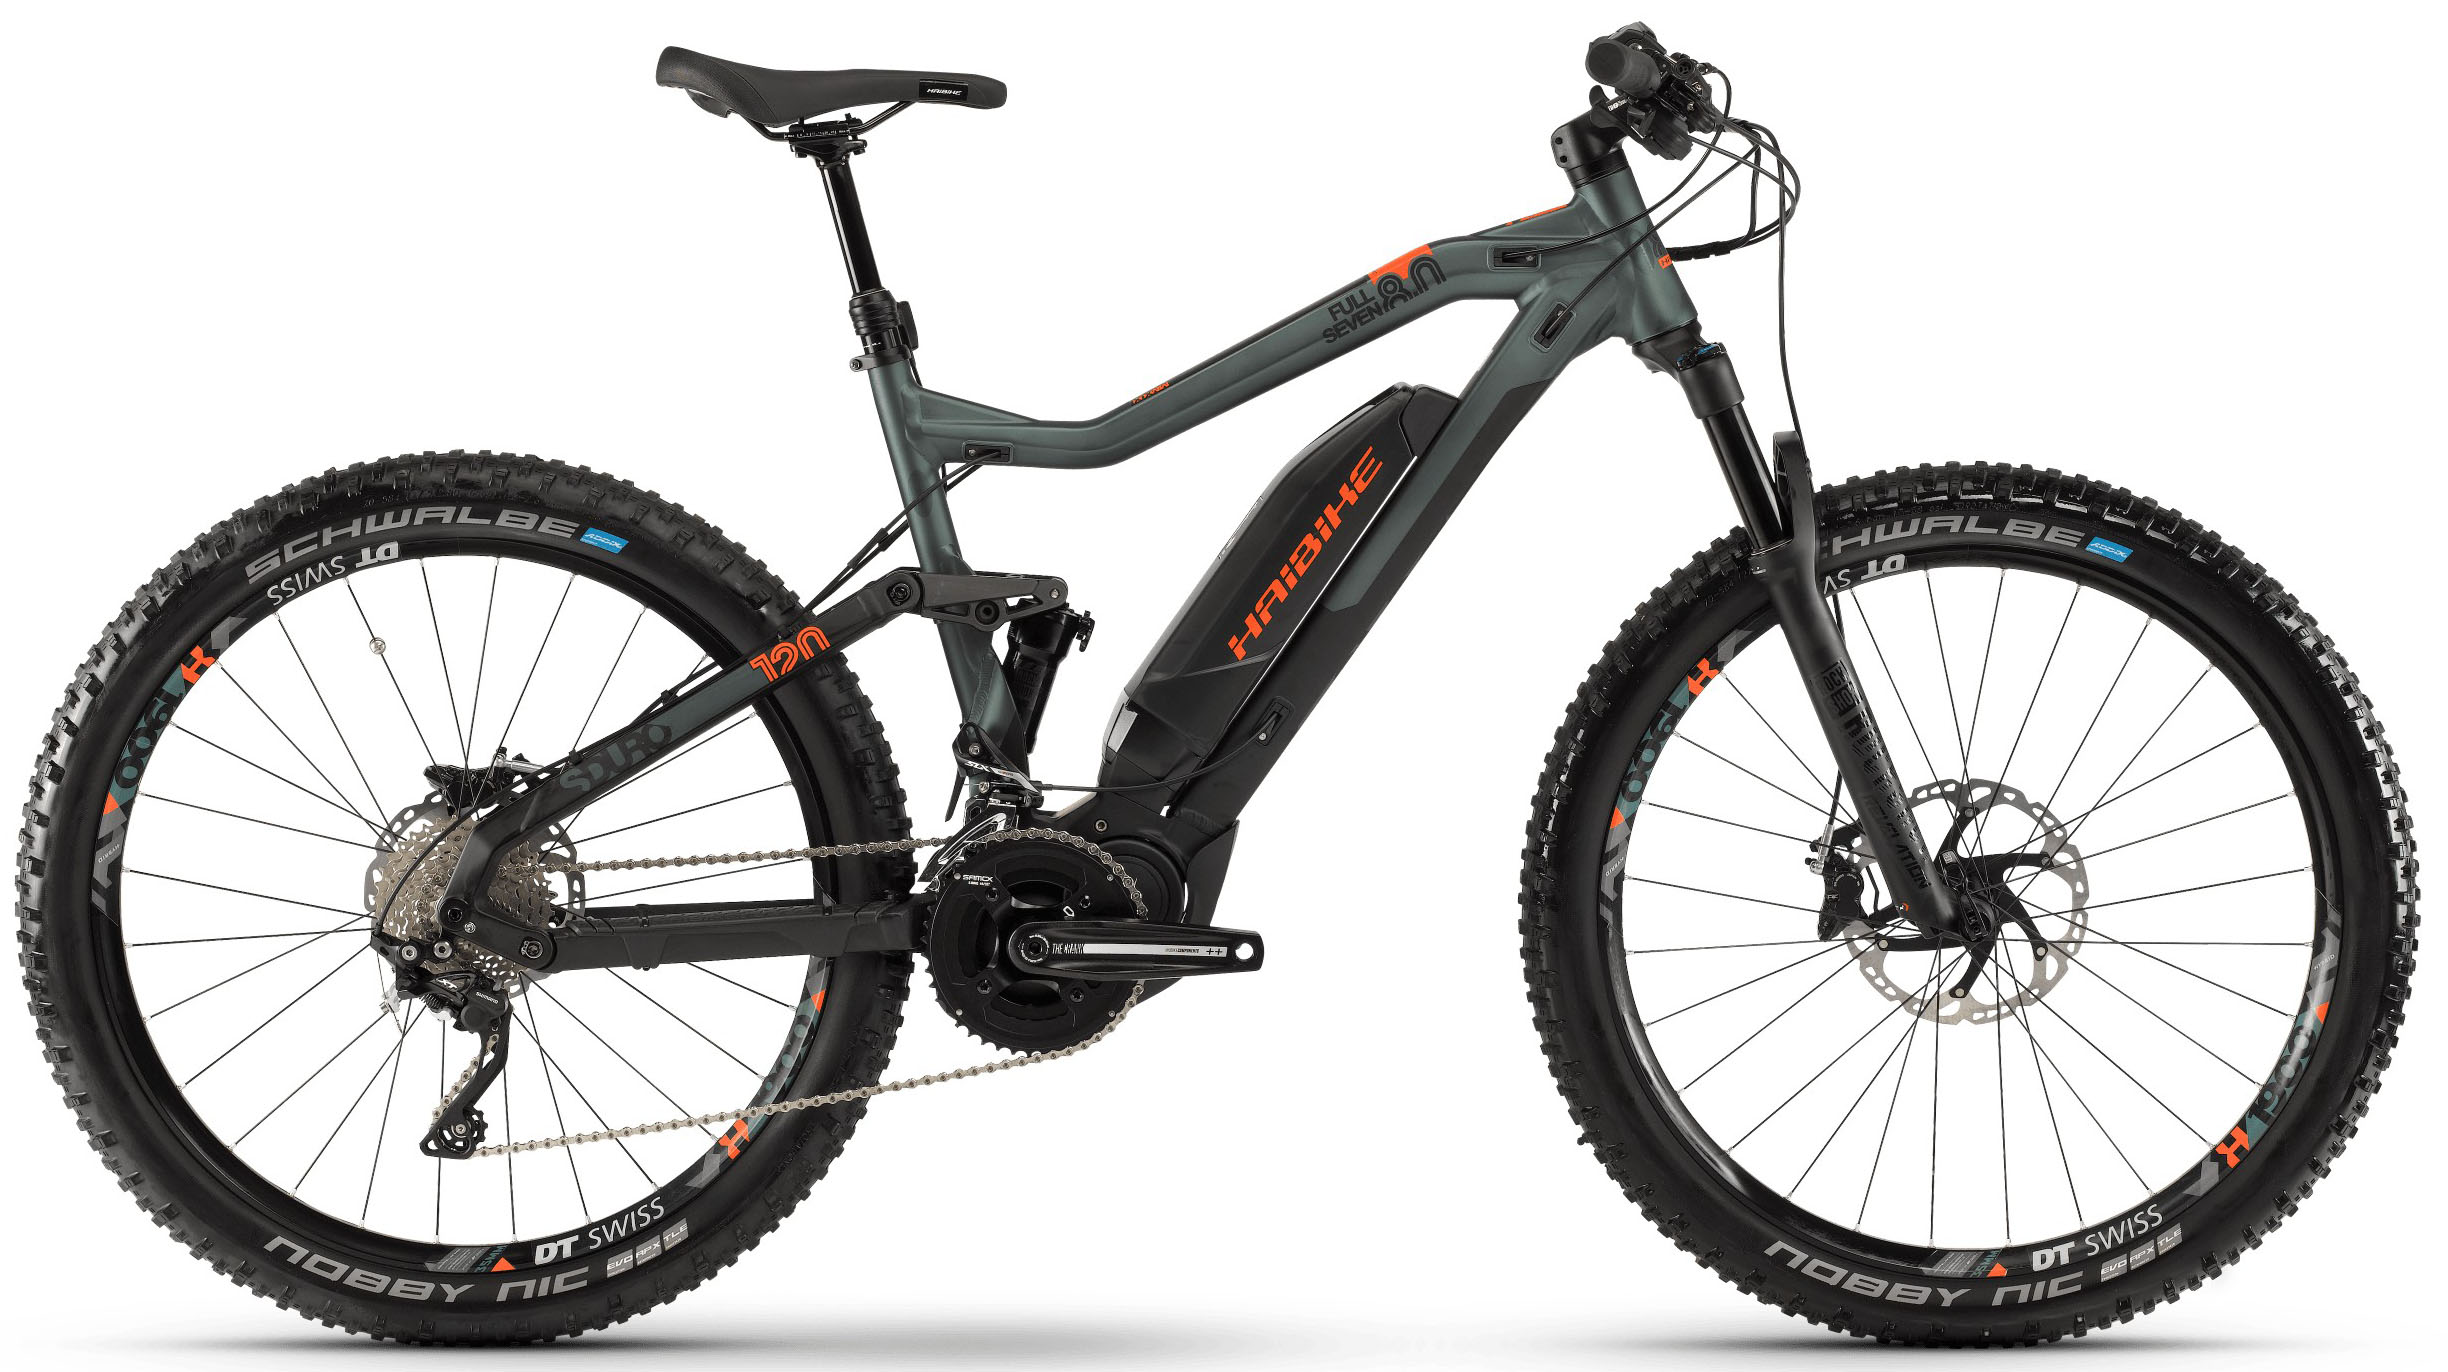 Велосипед Haibike SDURO FullSeven 8.0 500Wh 20-G XT (2019 2019 велосипед haibike sduro hardseven 9 0 500wh 11s xt 2018